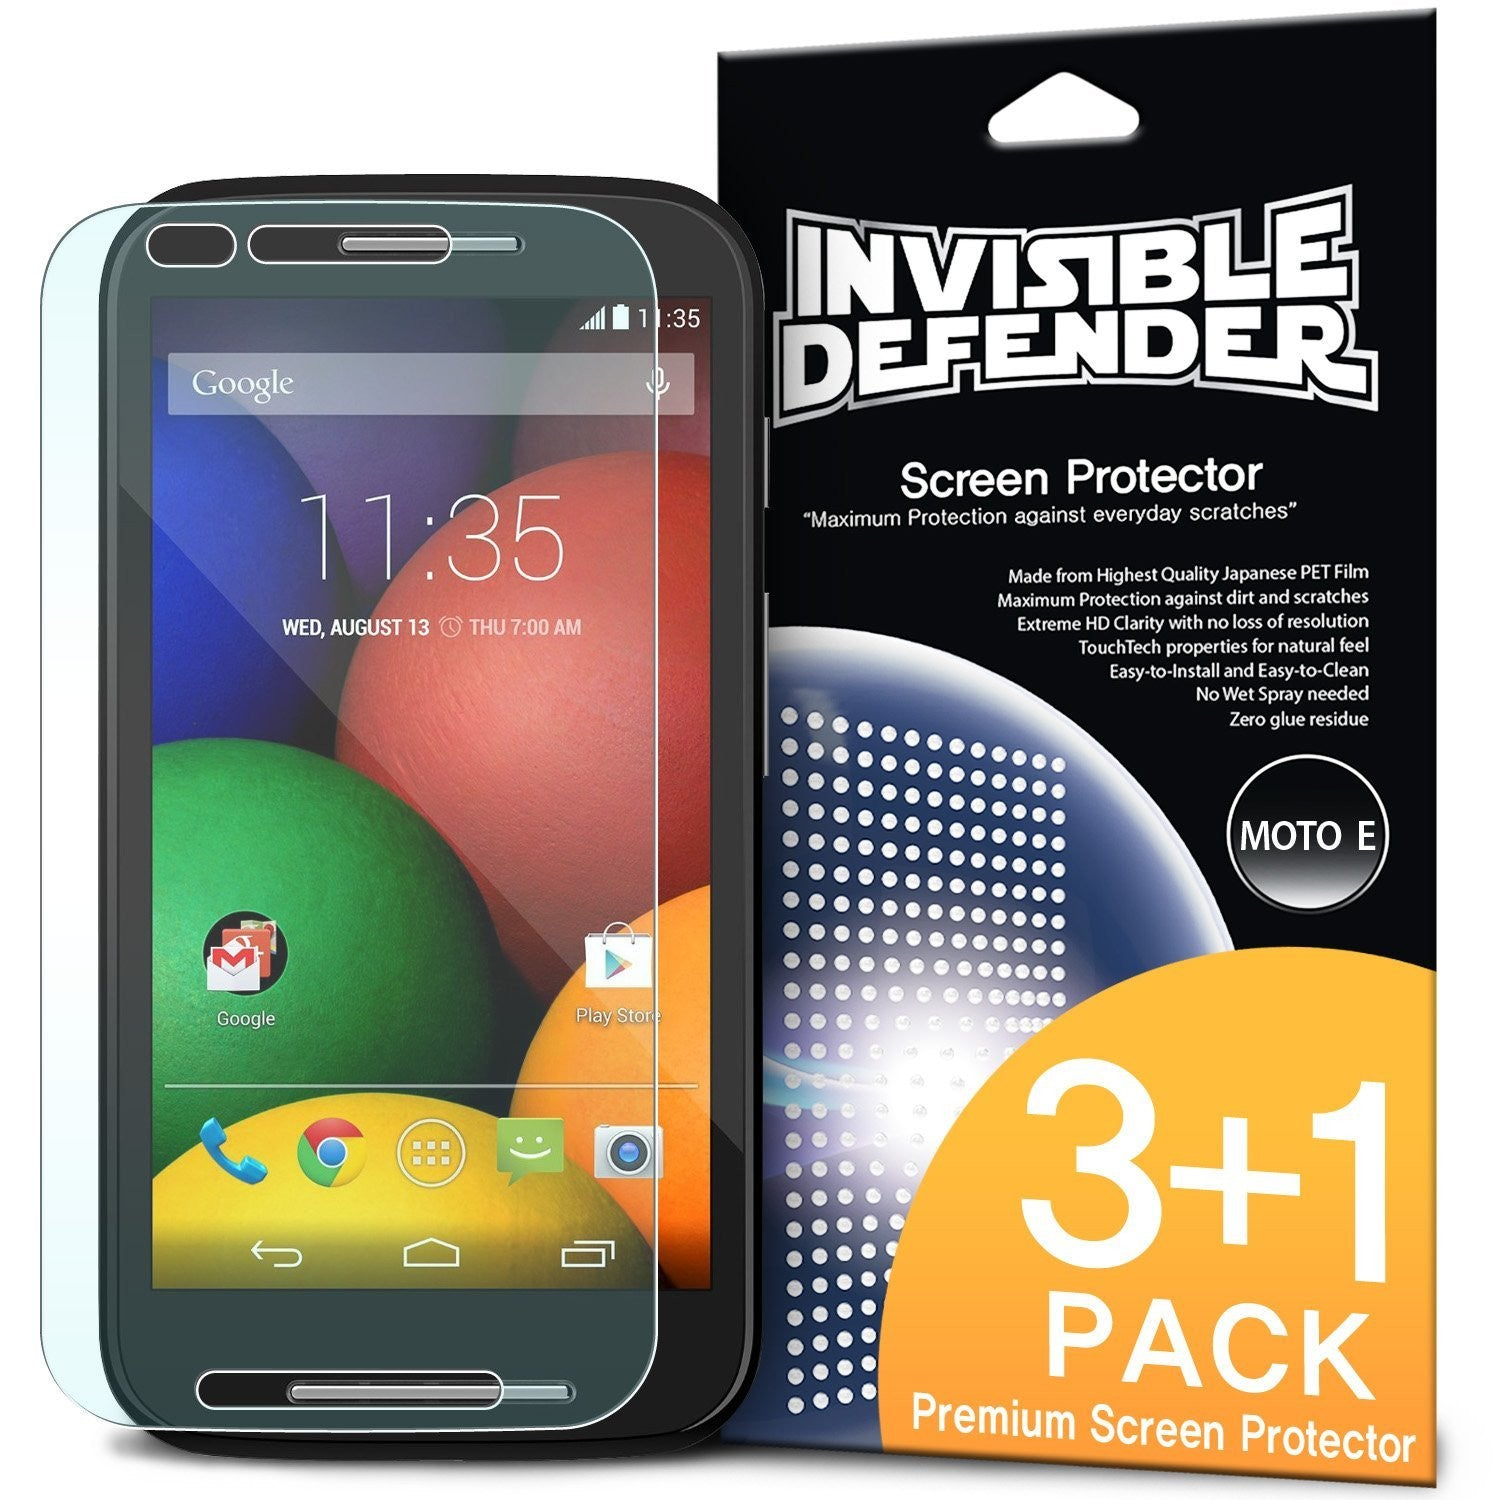 moto e 2014, ringke invisible defender 3+1 pack screen protector